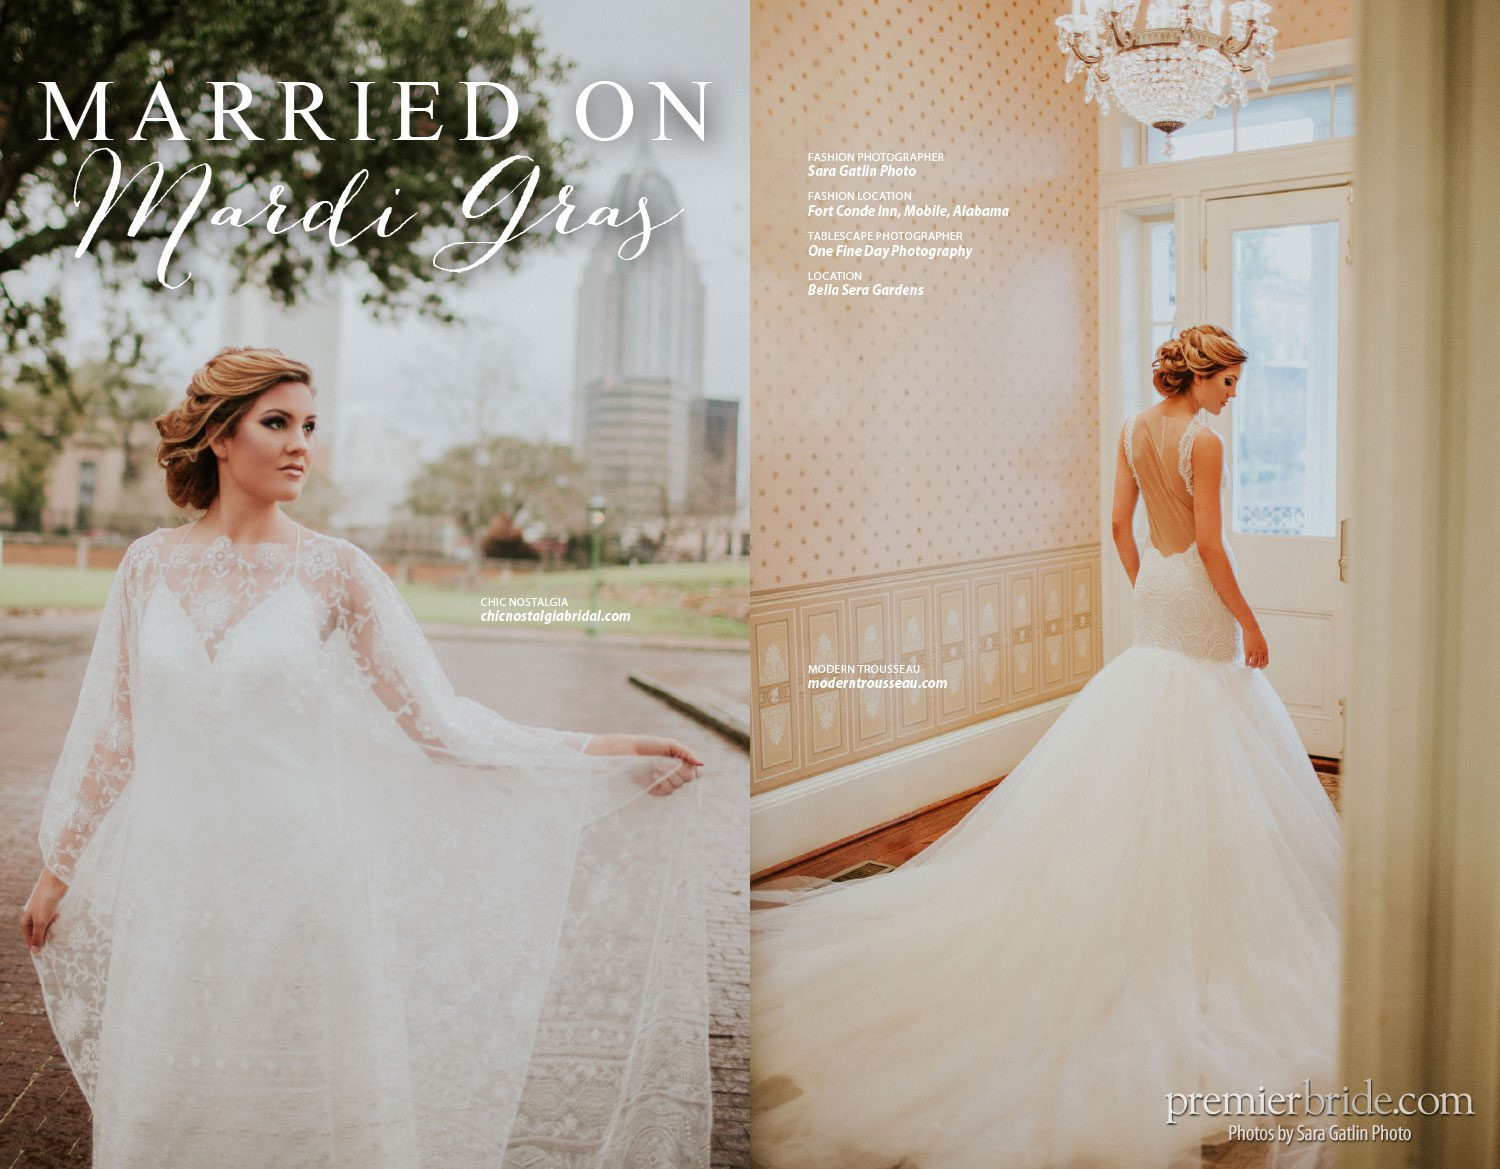 Chic Nostalgia, Modern Trousseau, photos by Sara Gatlin Photo